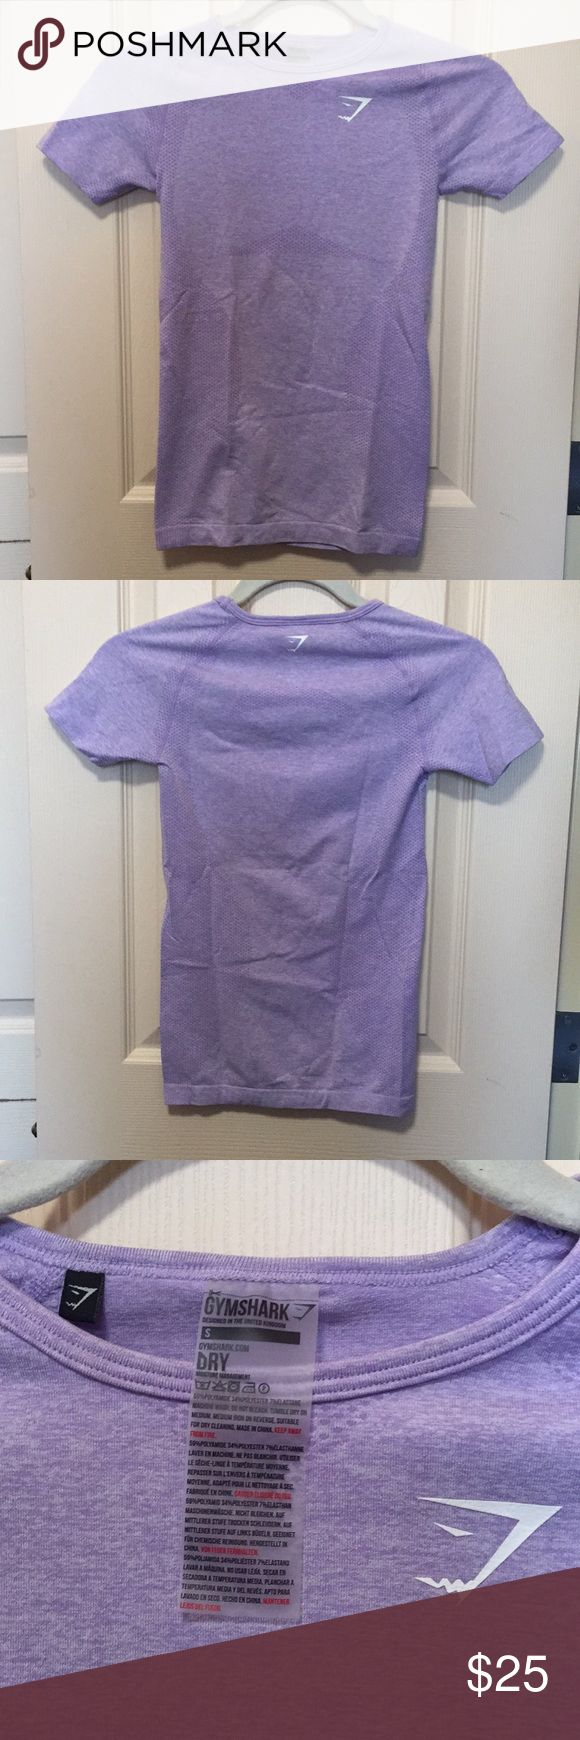 Gymshark Seamless T-shirt This shirt has been worn 2-3 times so it is in perfect condition! It is in a beautiful soft lilac marl color. Gymshark Tops Tees - Short Sleeve